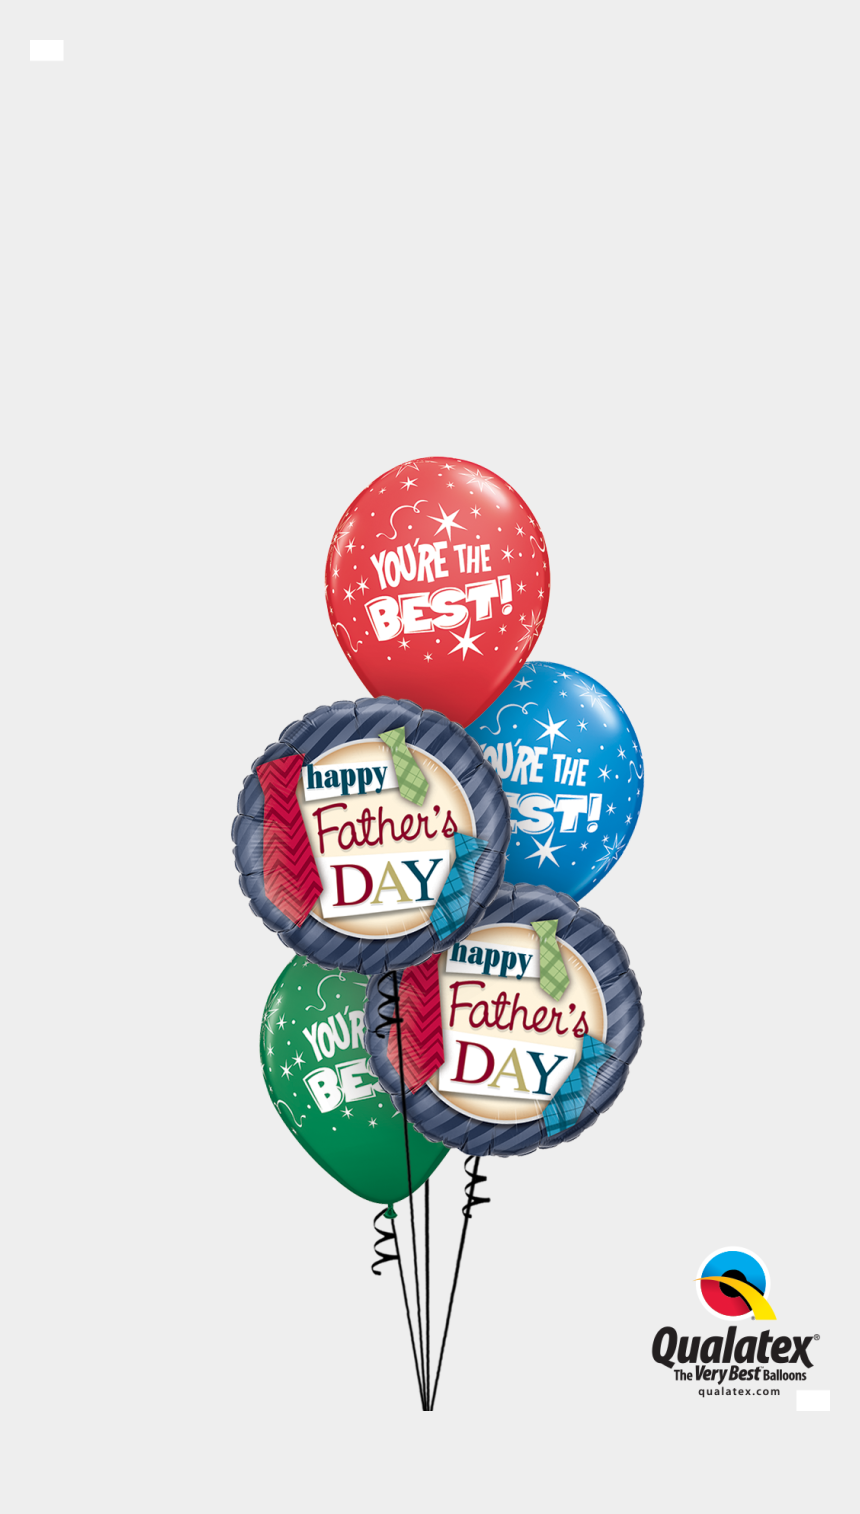 fathers day tie clipart, Cartoons - Happy Father's Day Ties - Fathers Day Balloons #1 Mom